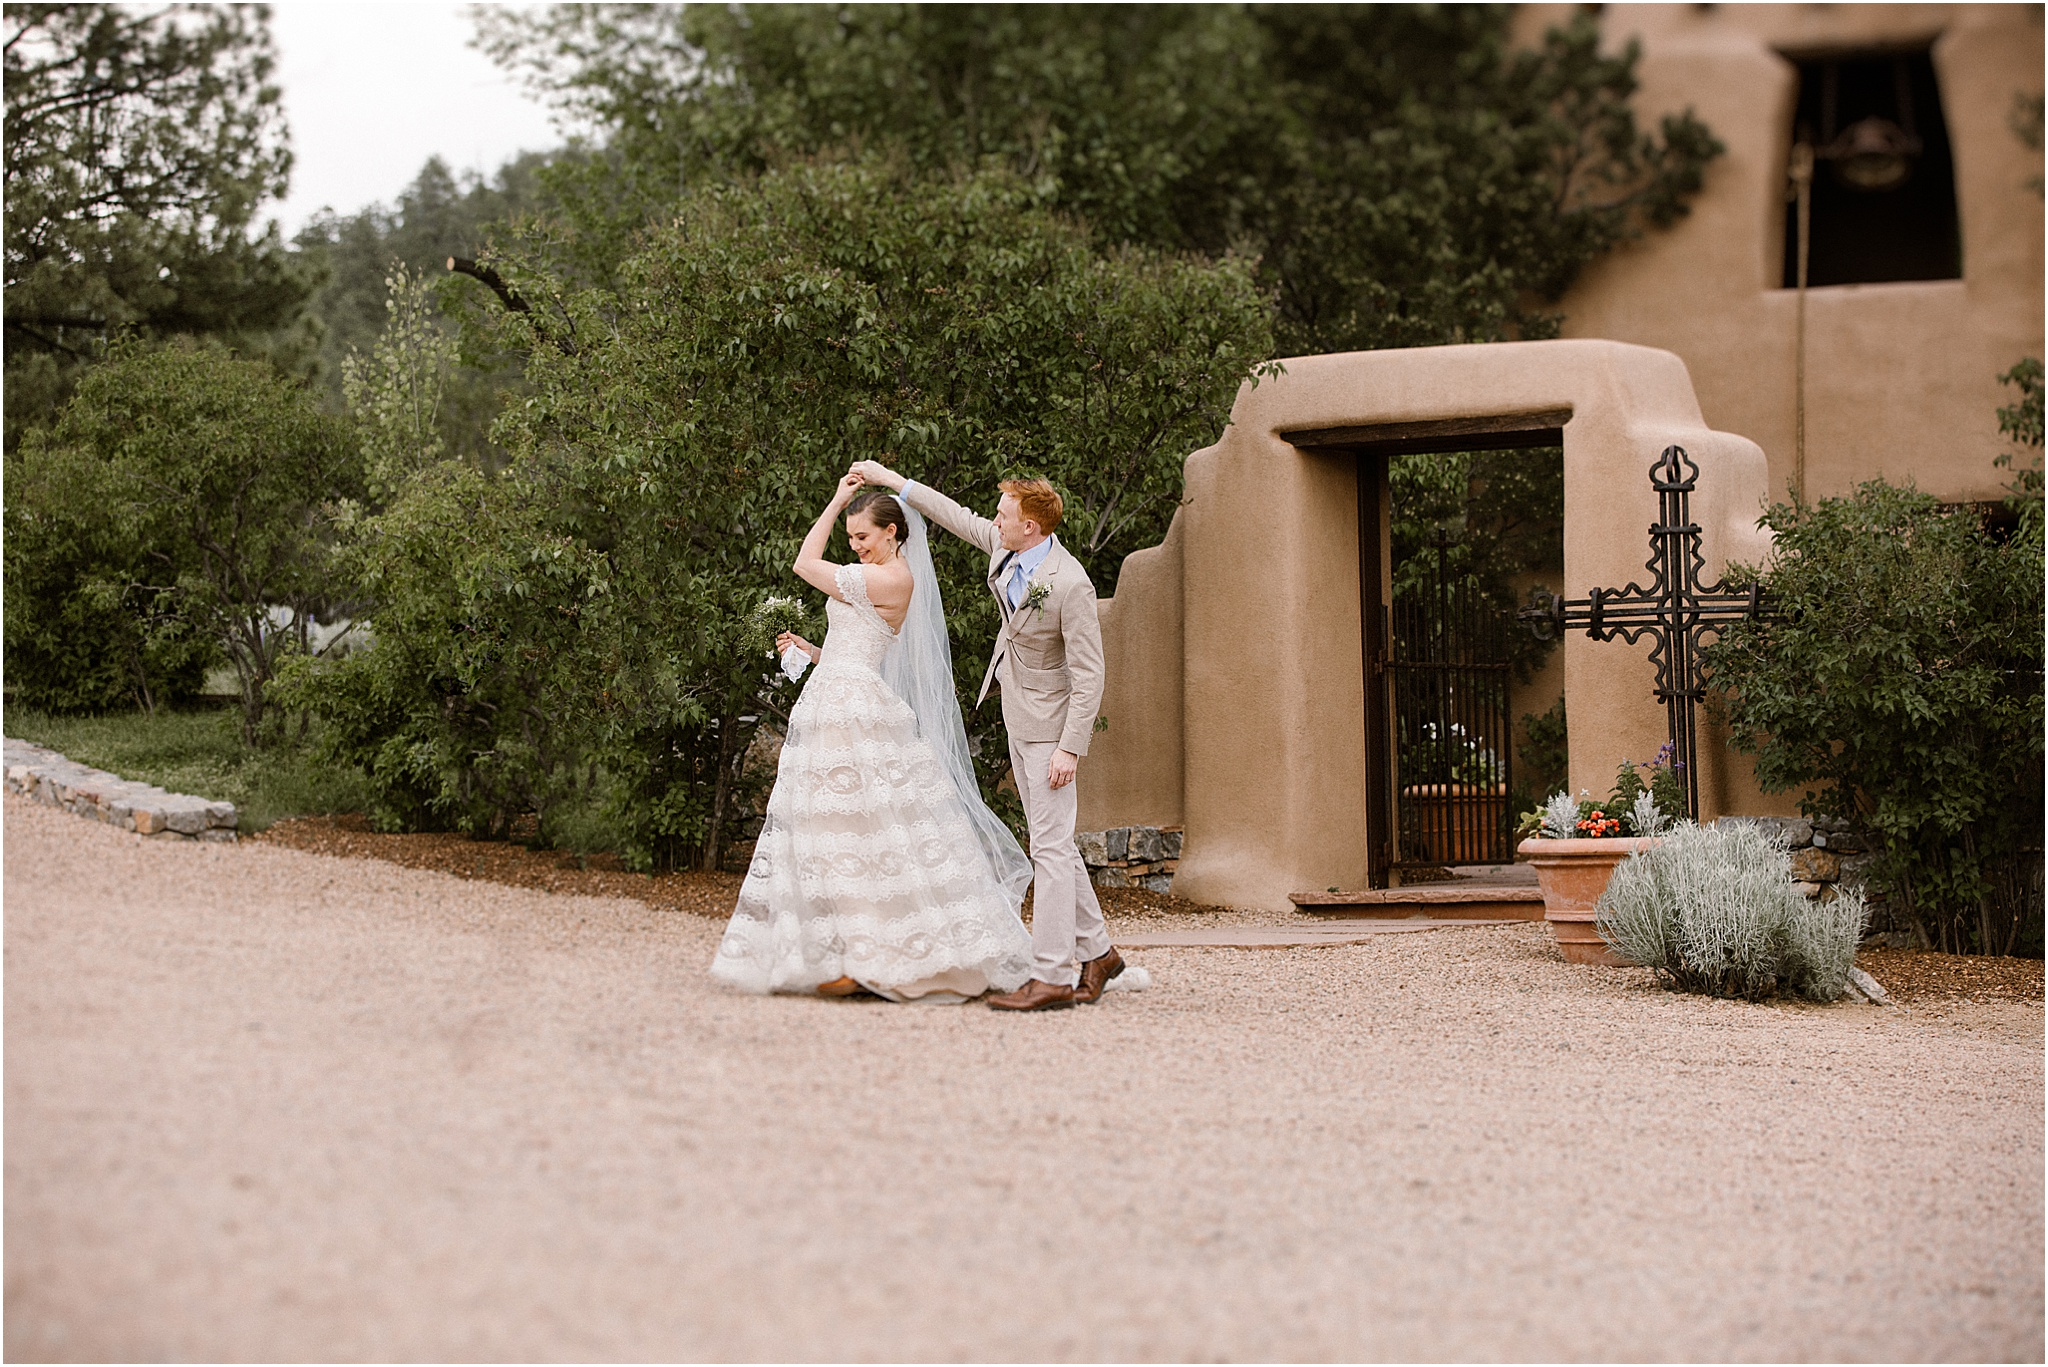 AMELIA_JASON_SANTA FE_ WEDDING_BLUE ROSE PHOTOGRAPHY84